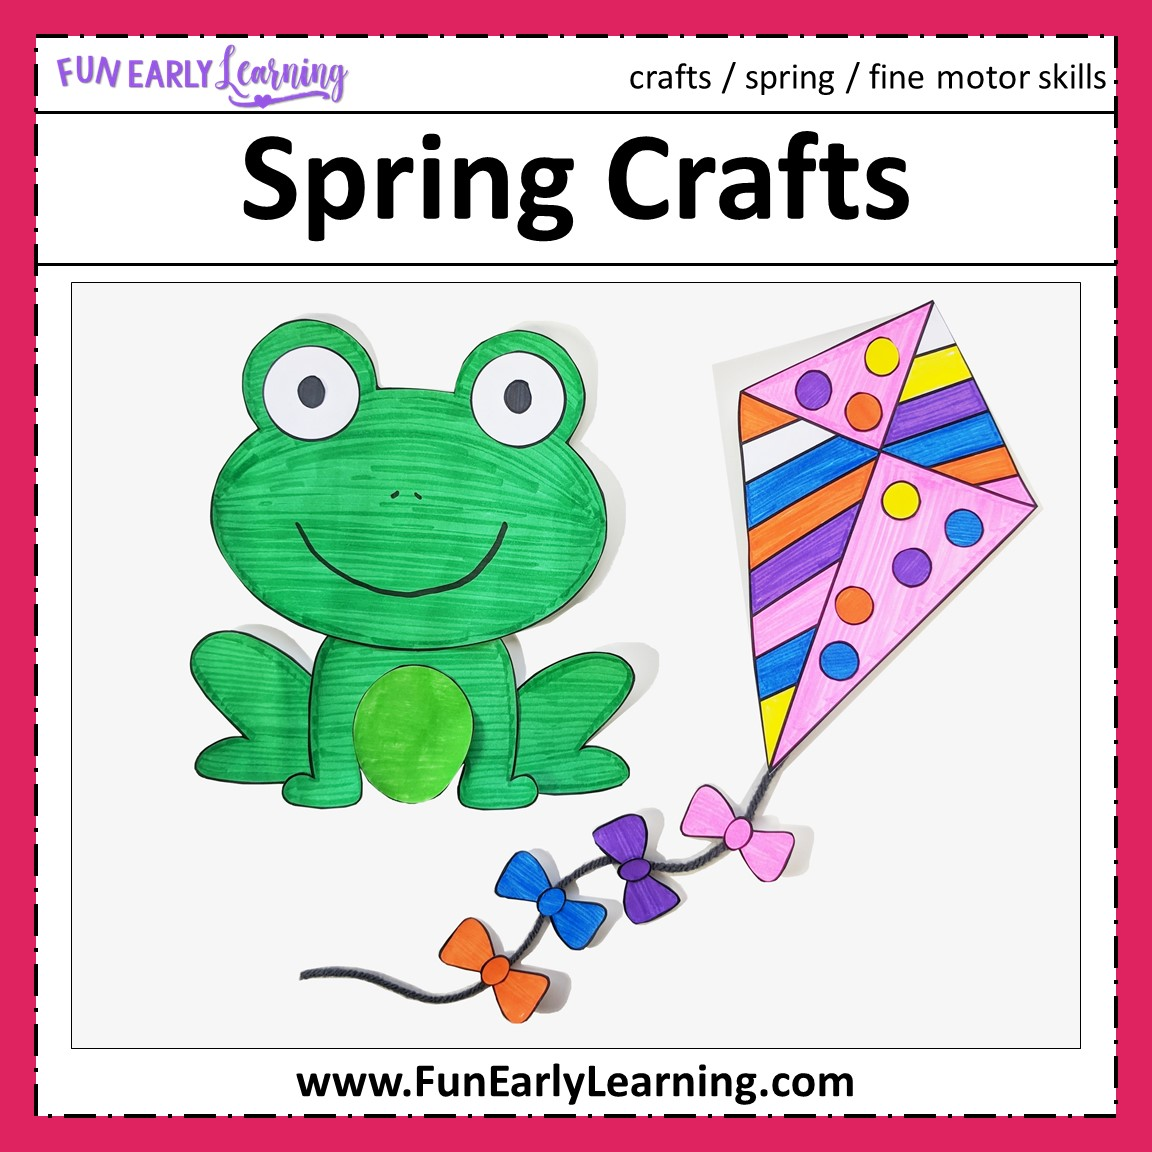 graphic regarding Printable Kid Crafts known as Spring Crafts - Flower Pot, Frog, Kite, and Umbrella with